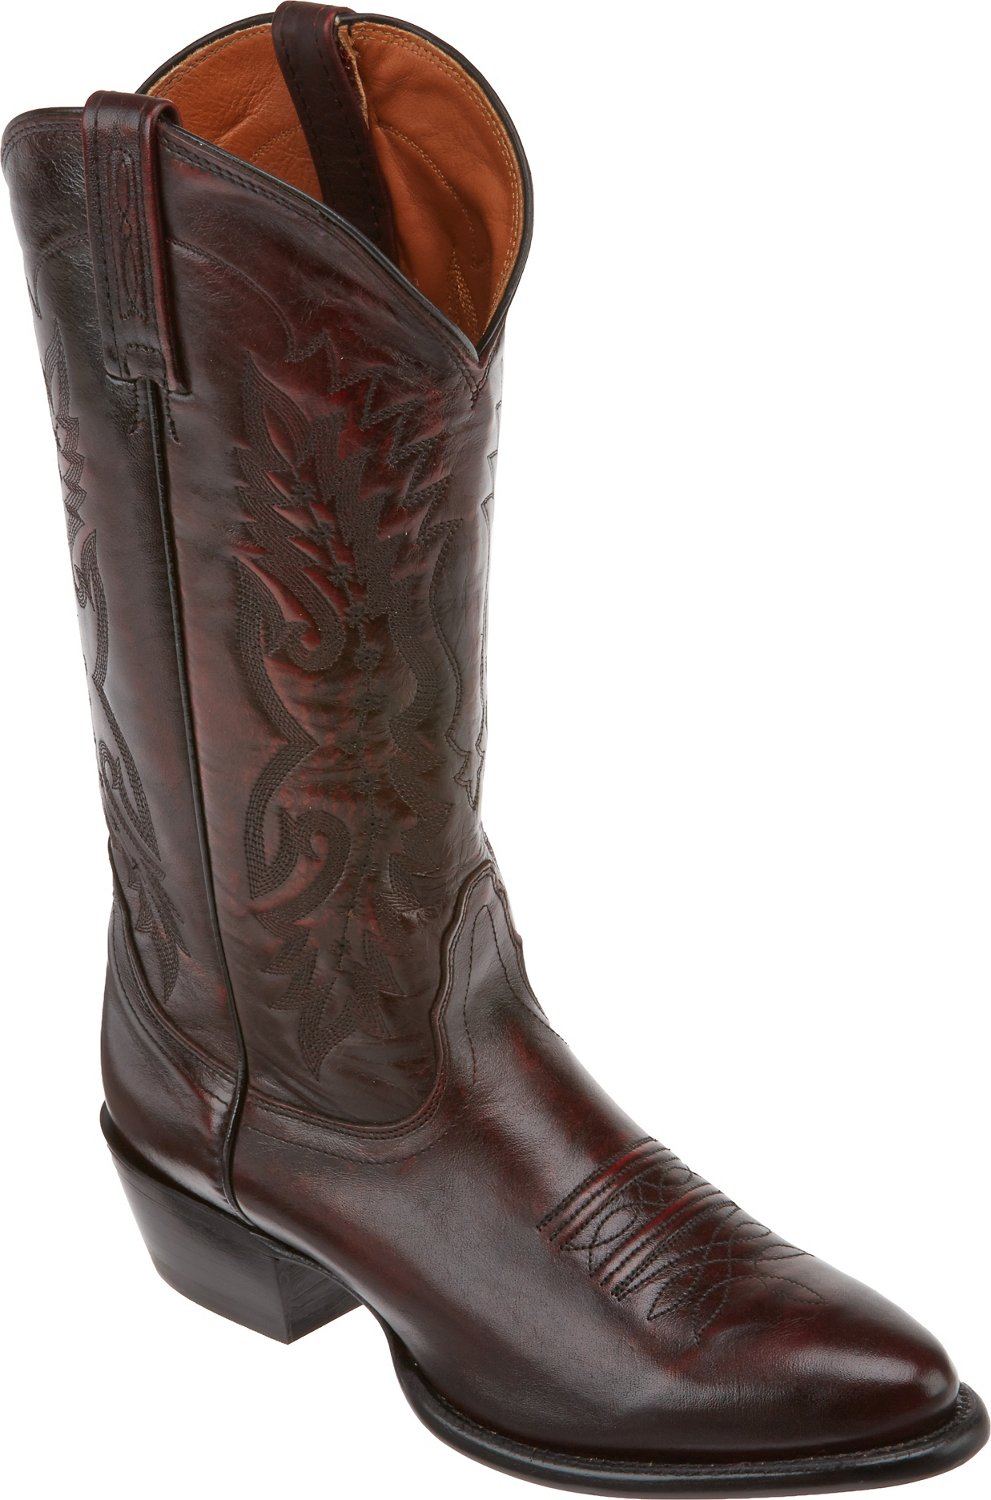 Nocona Boots Men's Western Boots - view number 2